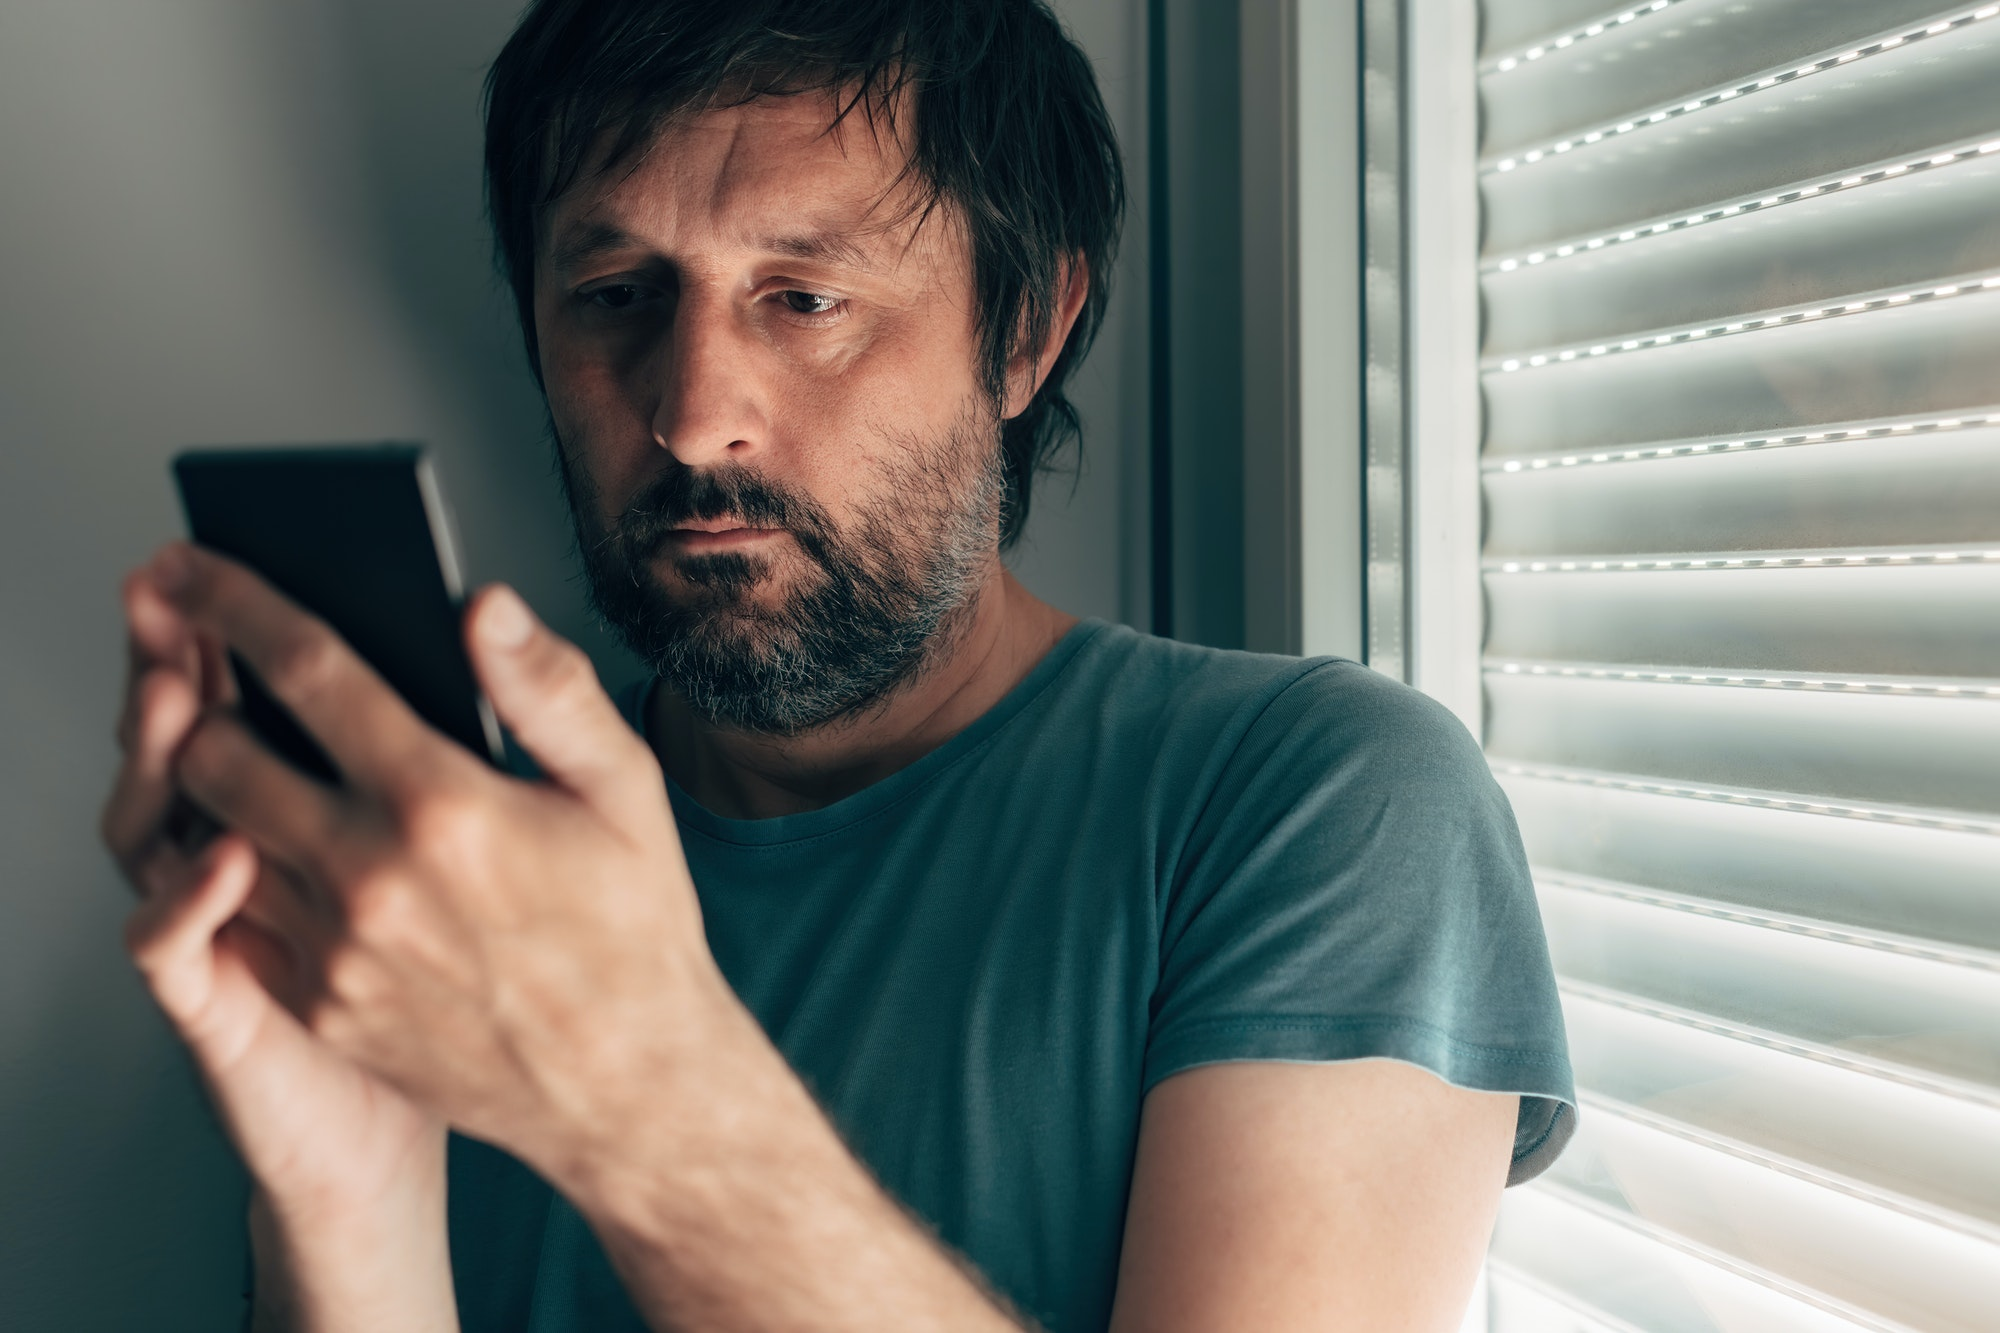 Man text messaging on mobile phone in privacy of bedroom